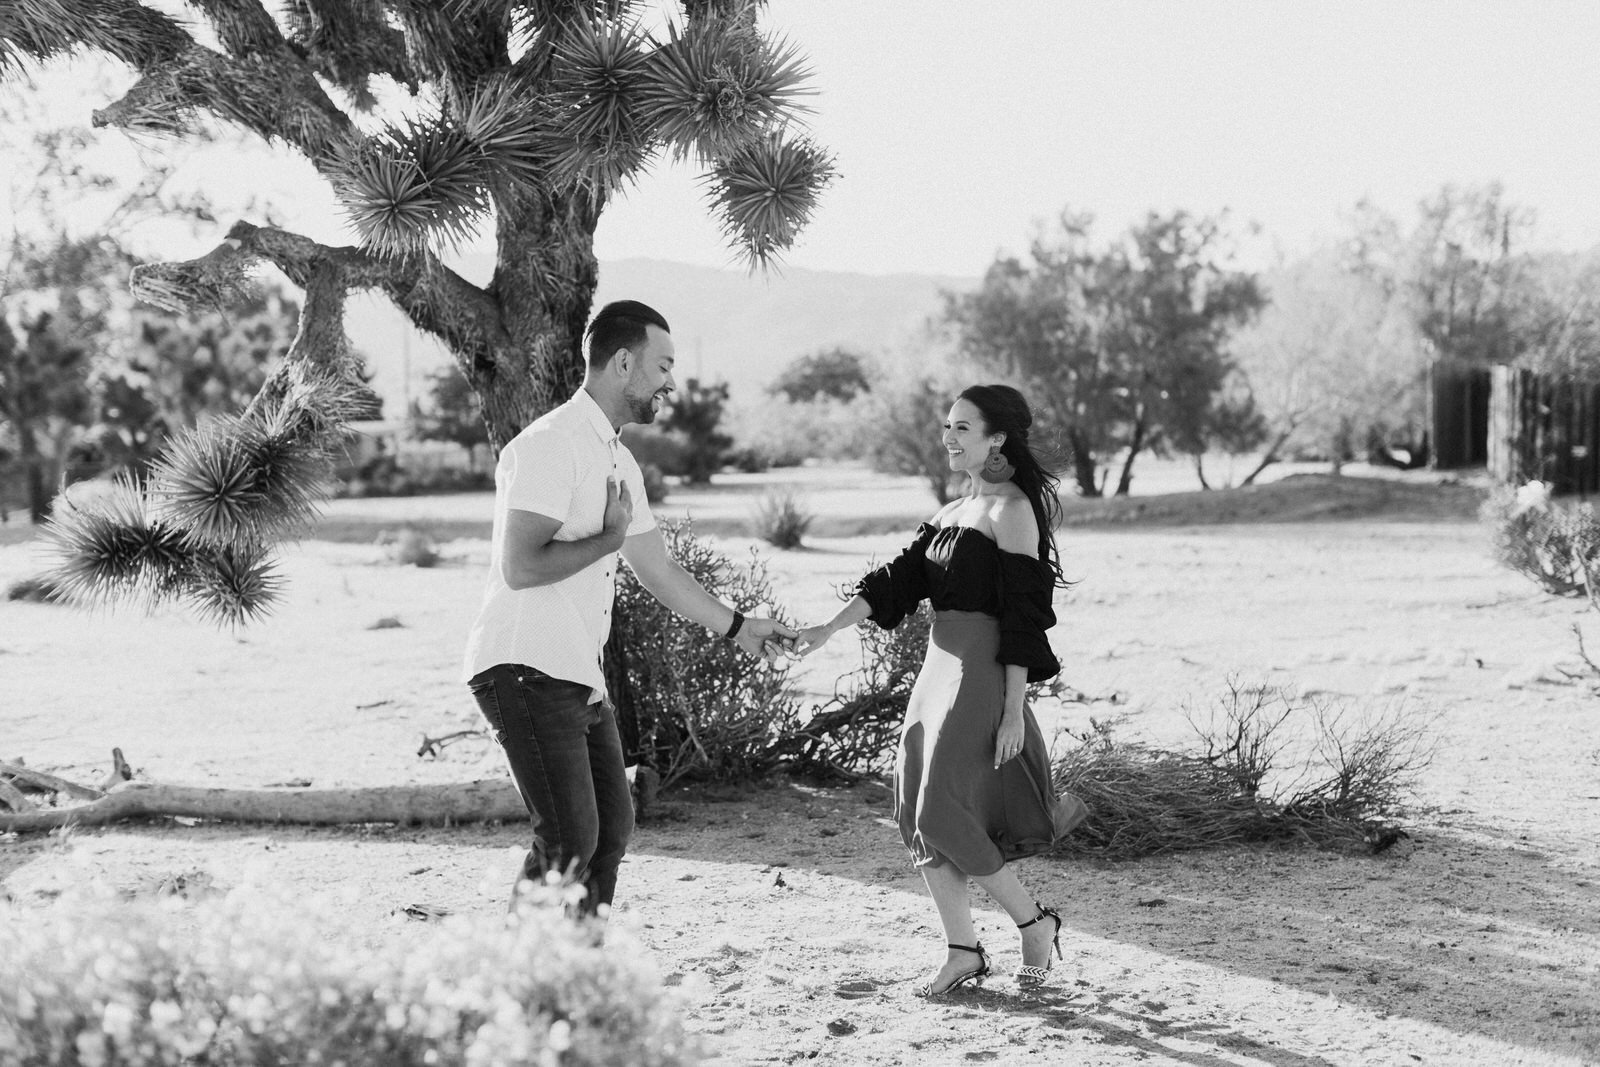 Brianna Broyles_1_Joshua Tree Wedding Photographer_Joshua Tree Engagement_Palm Springs Wedding_Palm Springs